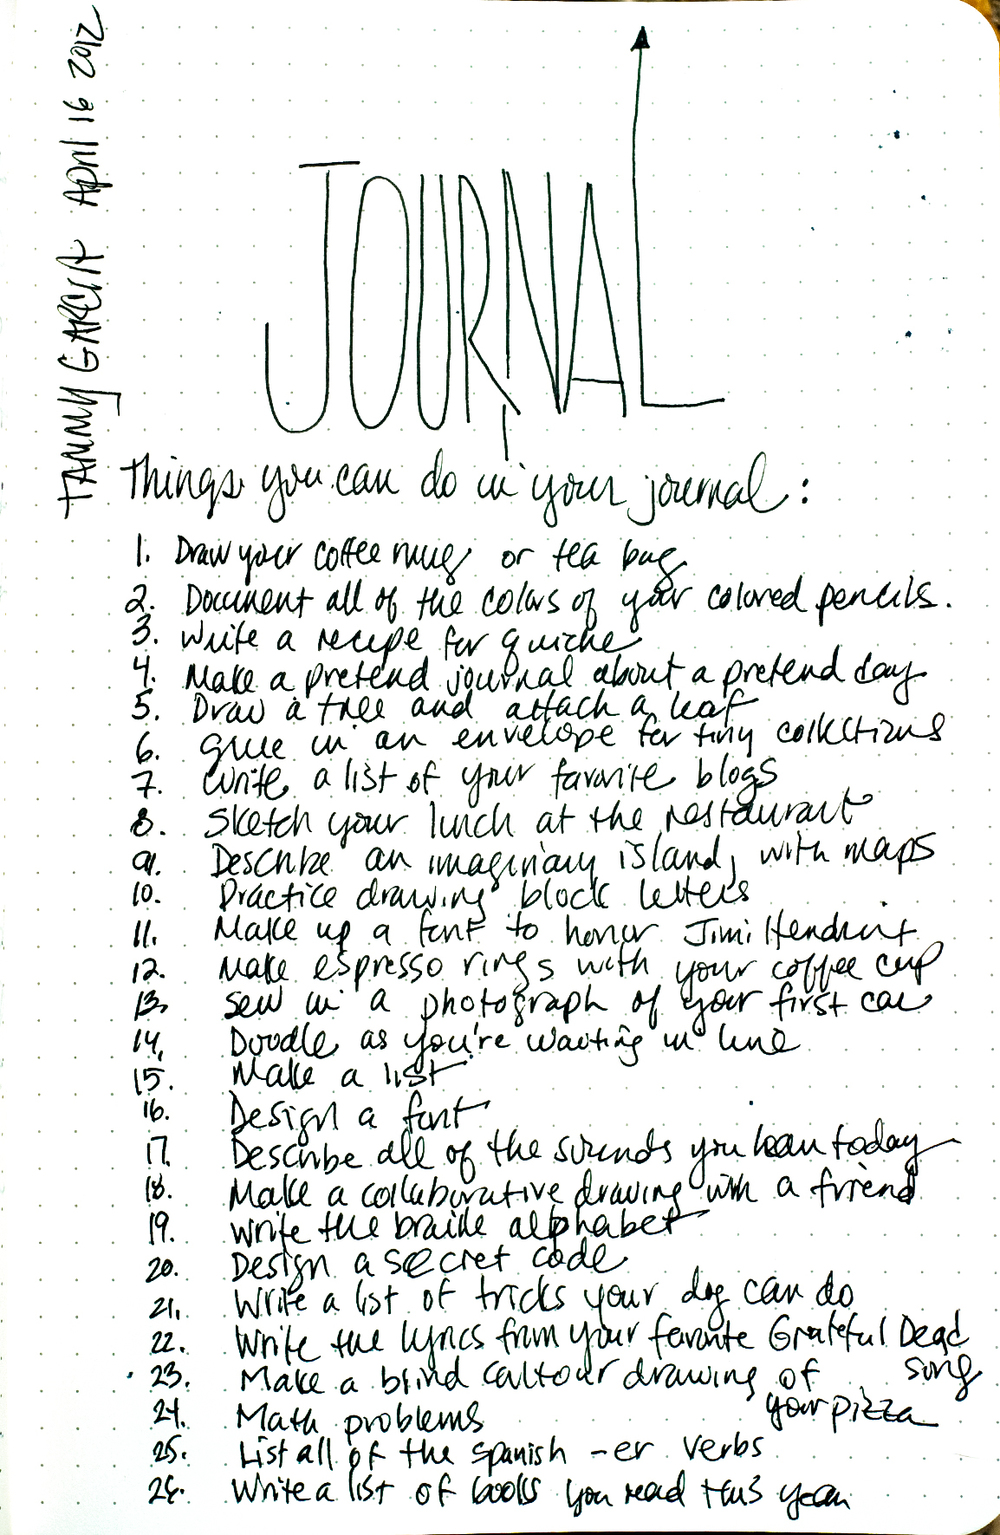 Twenty-six (26) things you can do in your journal. Rhodia dot webbie journal, black gelly roll pen.